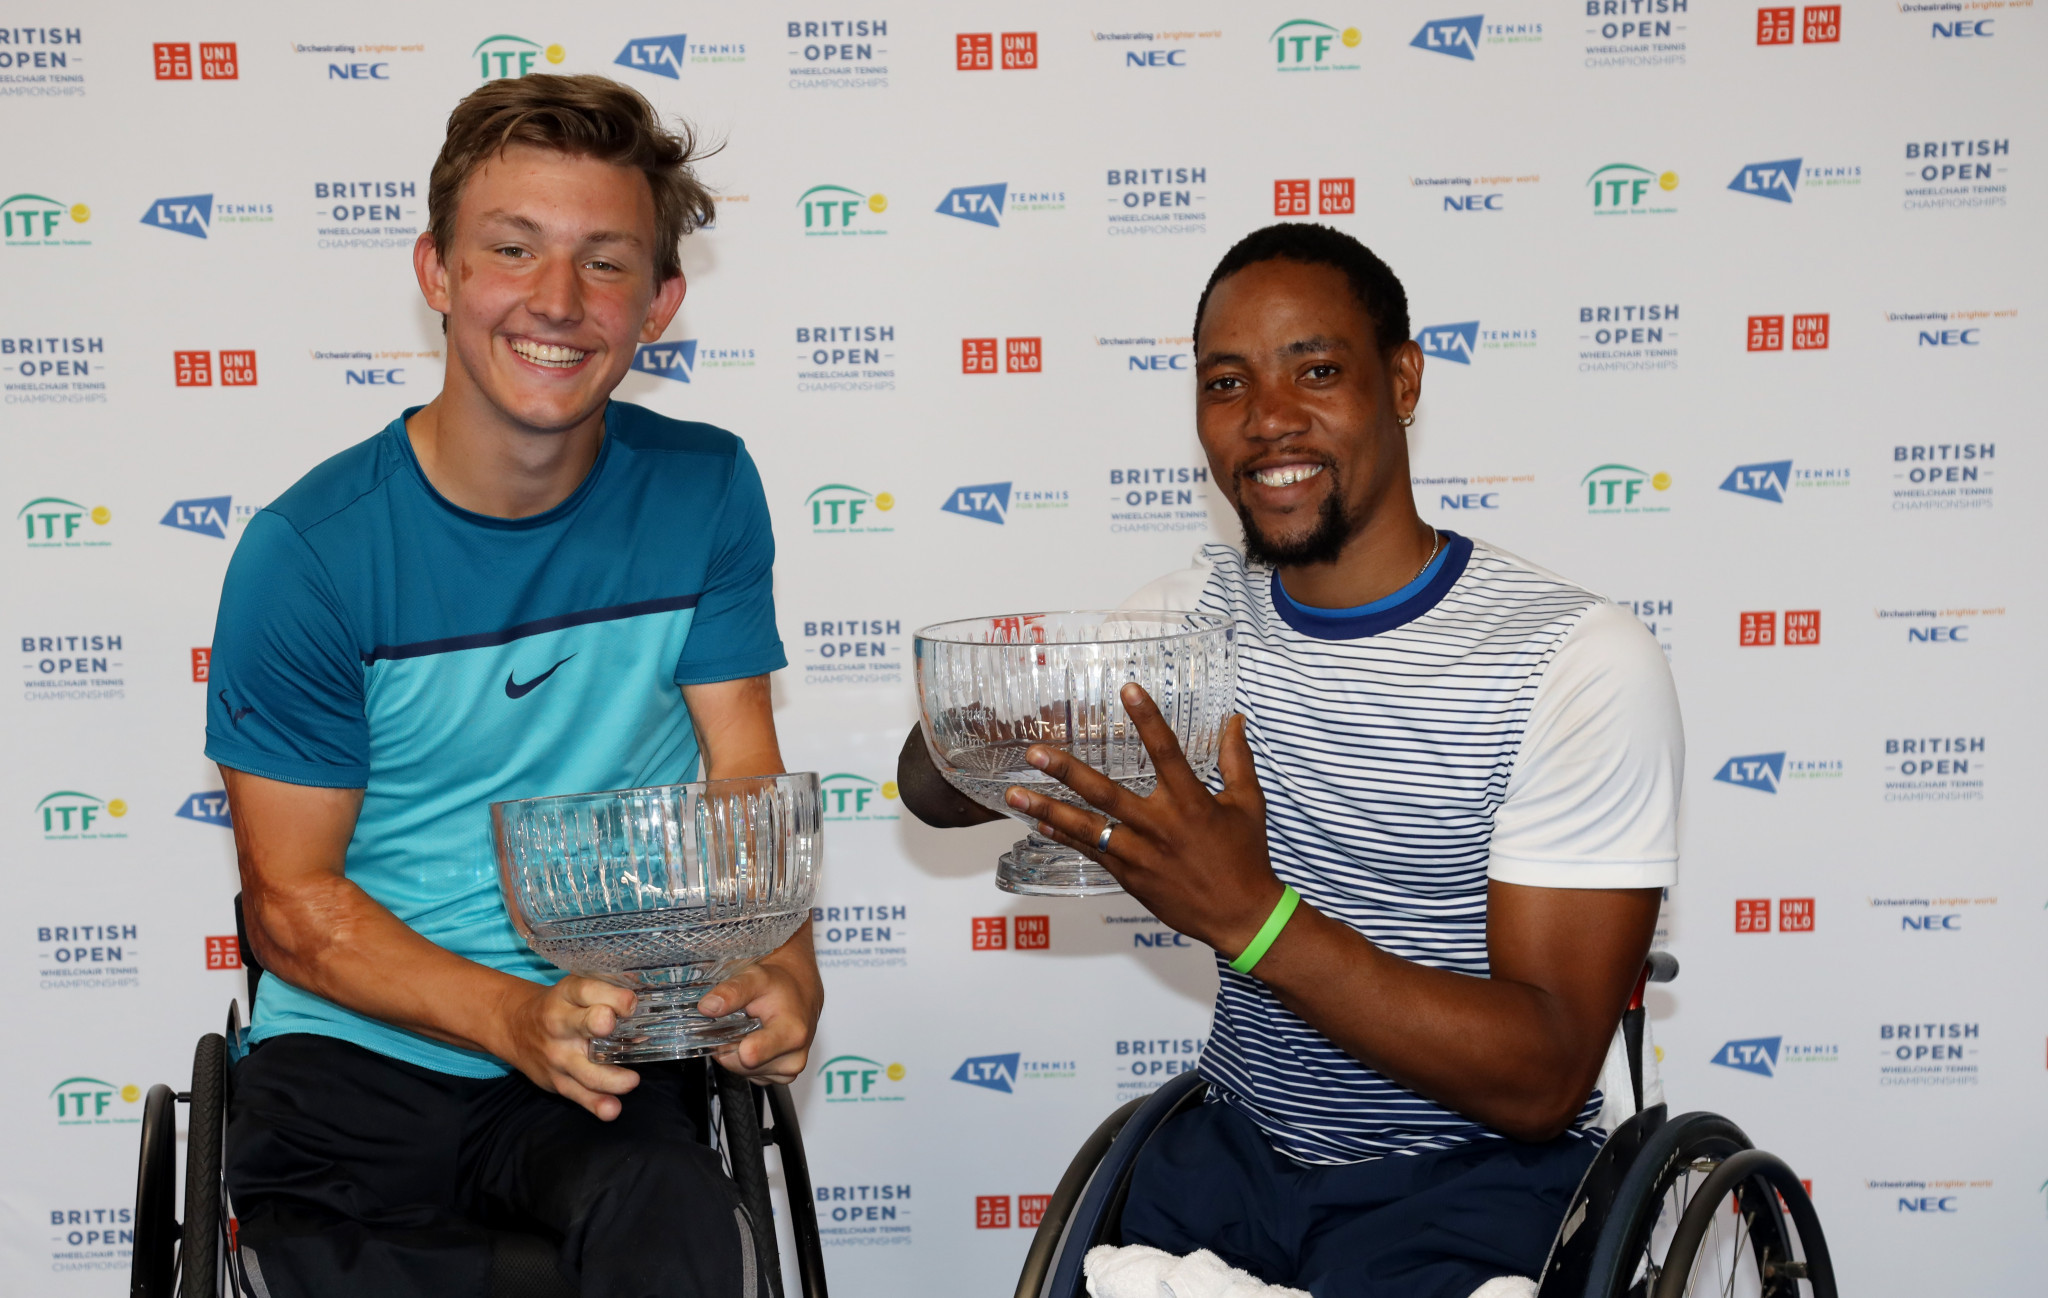 Sixteen-year-old Vink victorious in quad doubles final at rain-affected British Open Wheelchair Tennis Championships